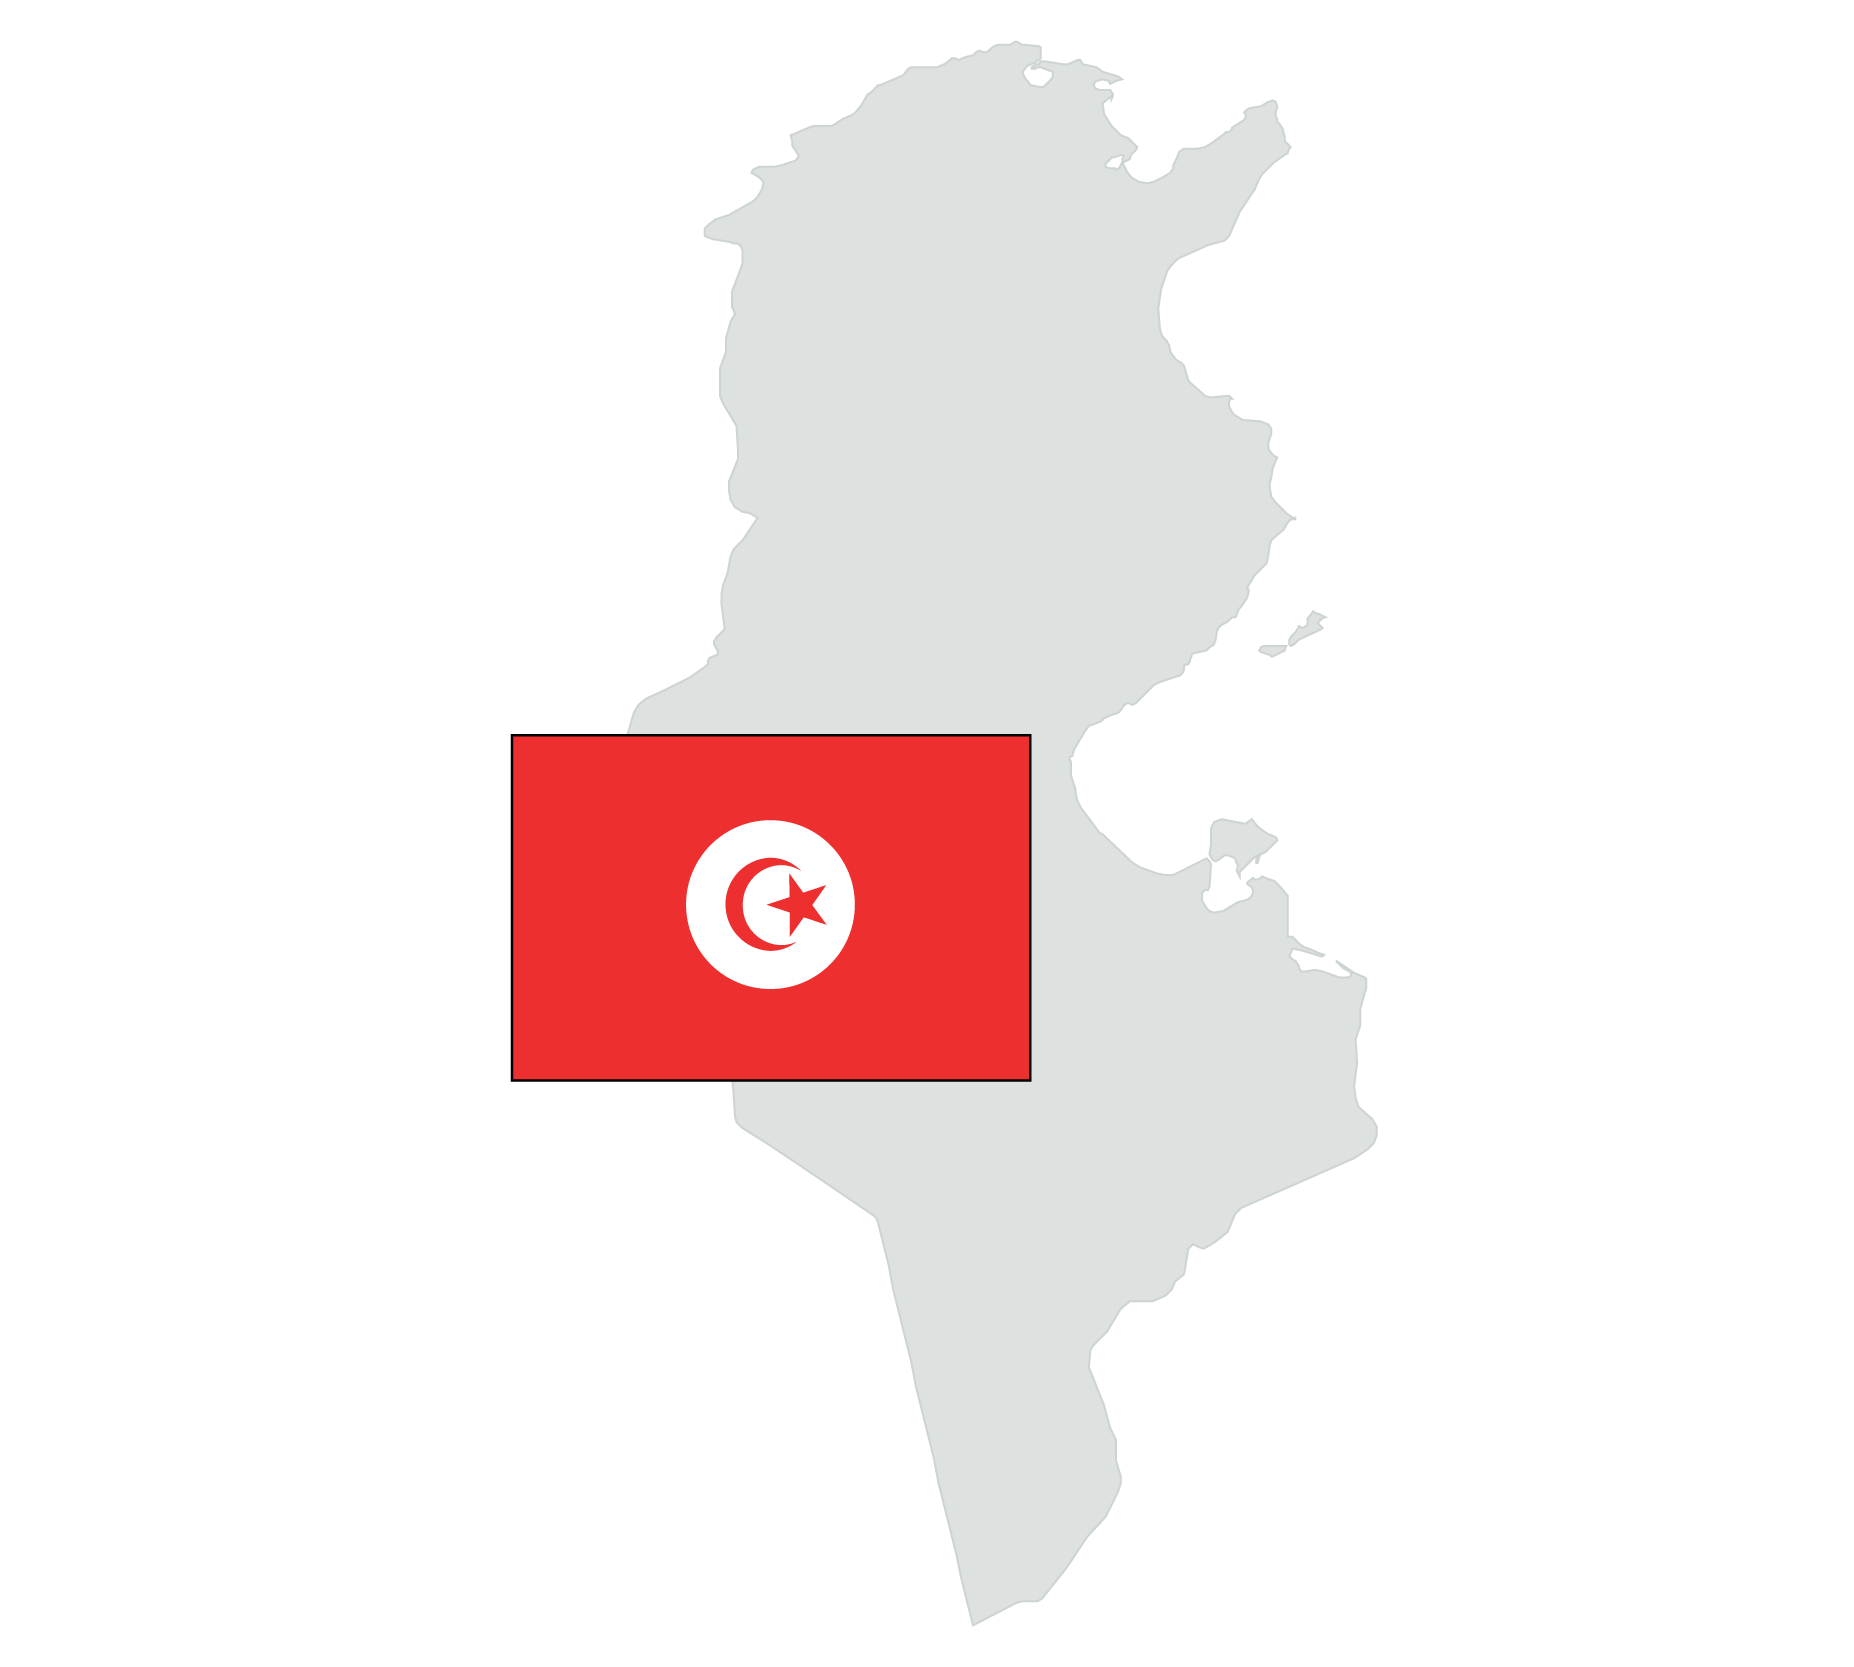 Tunisia debuts low-carbon transition